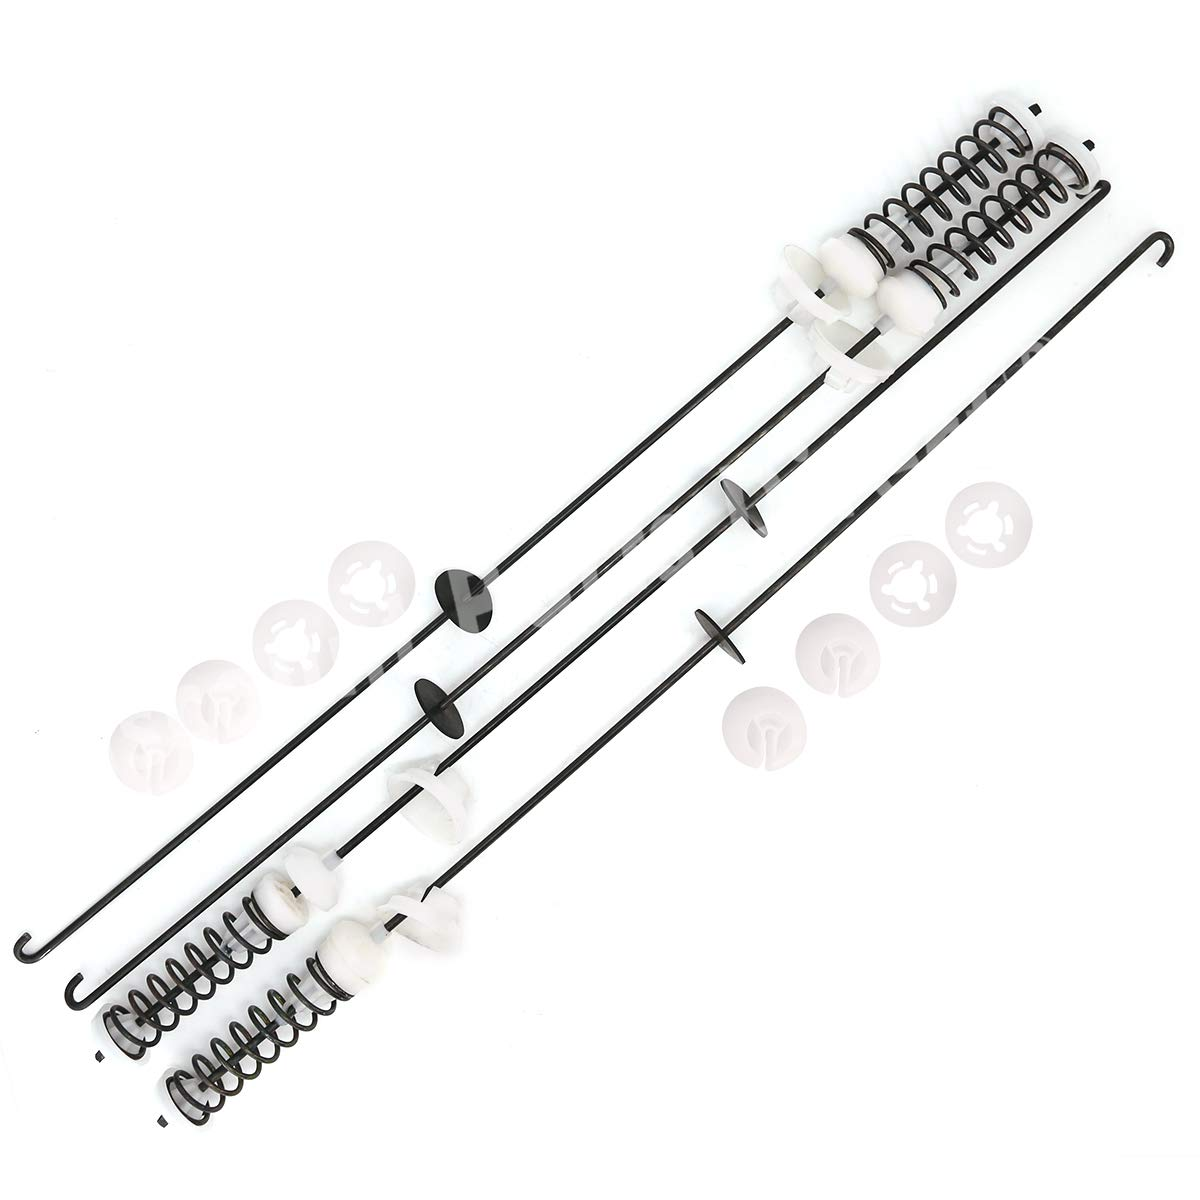 W10189077 Washing Machine Suspension Rods Kit for Whirlpool Maytag Kenmore Washer, Replaces W10820048, PS11723157, 280144, 8564009, 8566146,